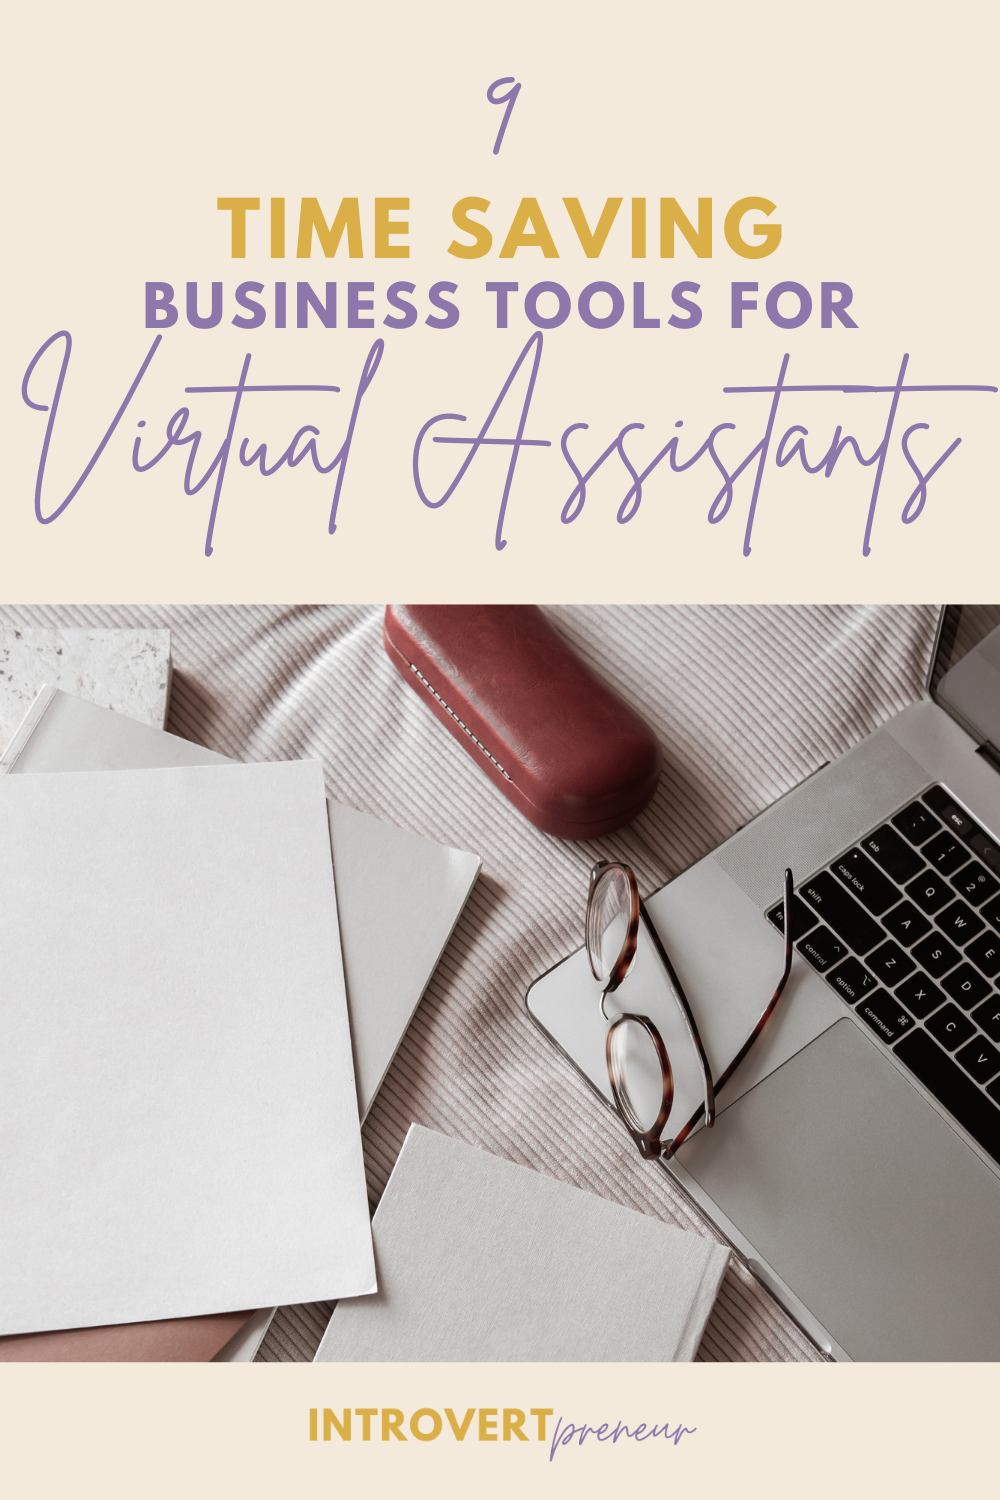 9 Time Saving Business Tools for Virtual Assistants